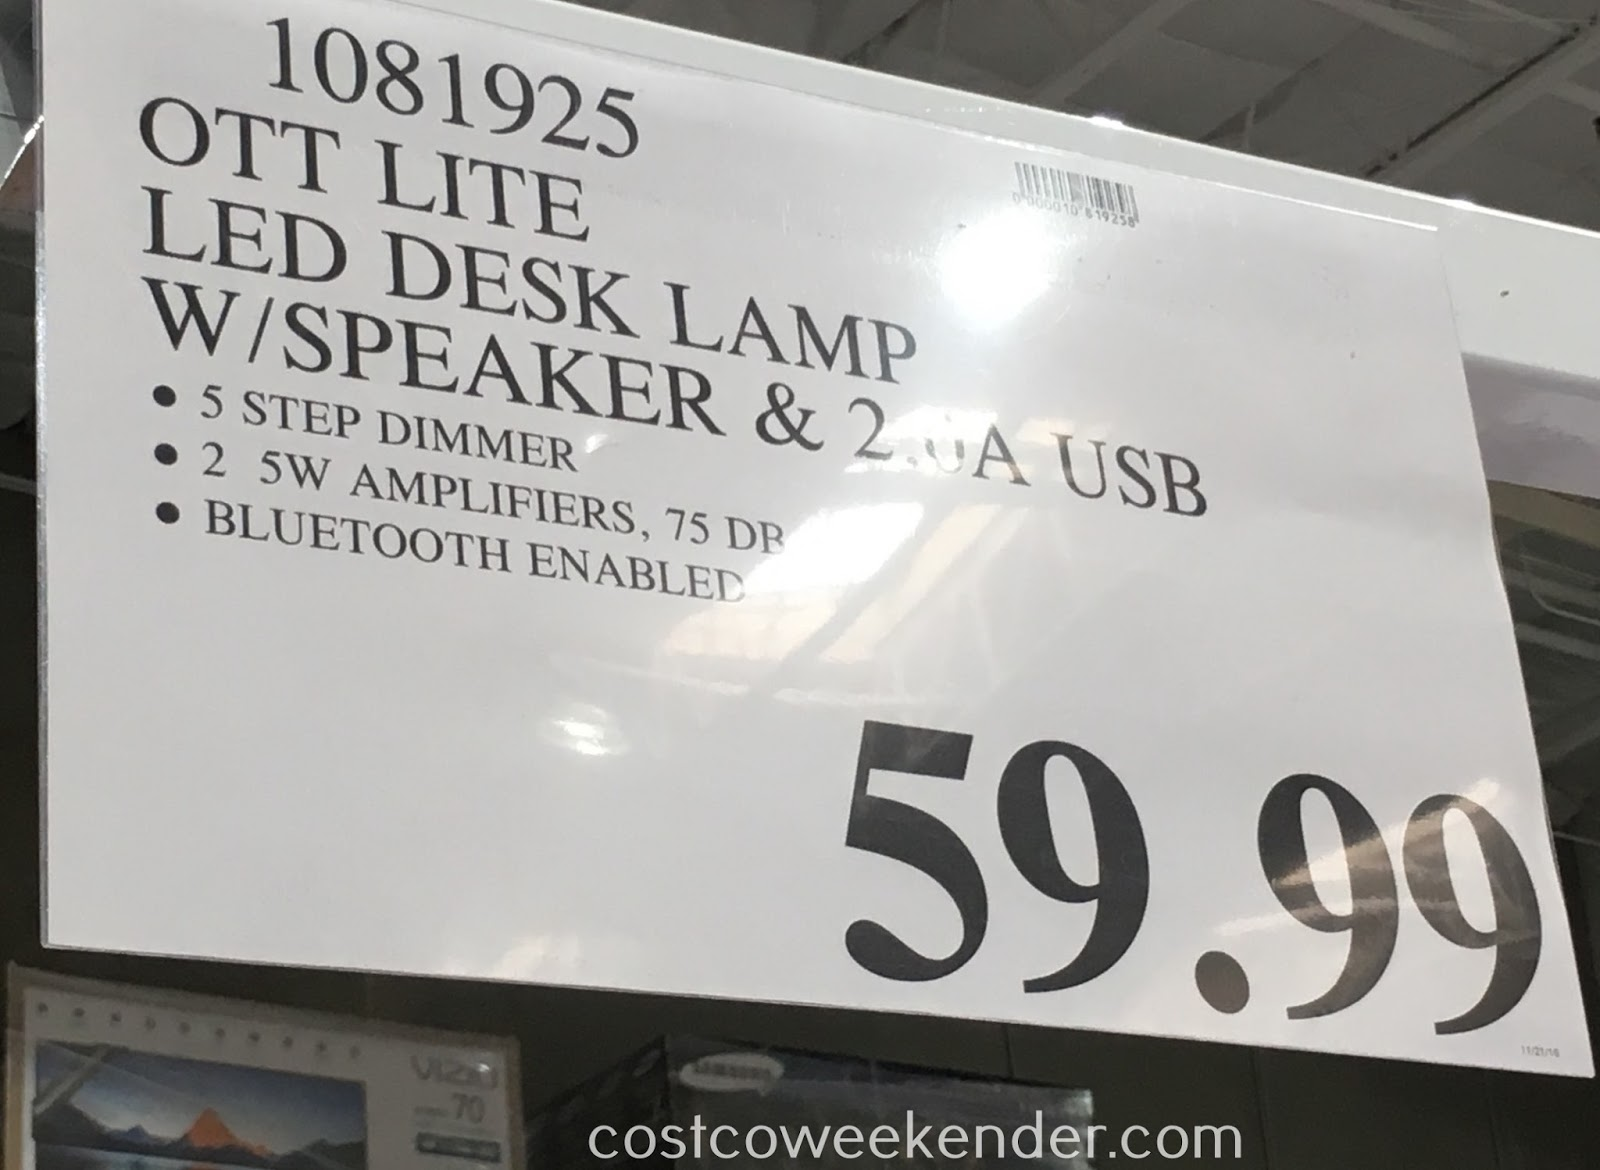 Deal for the OttLite LED Desk Lamp at Costco